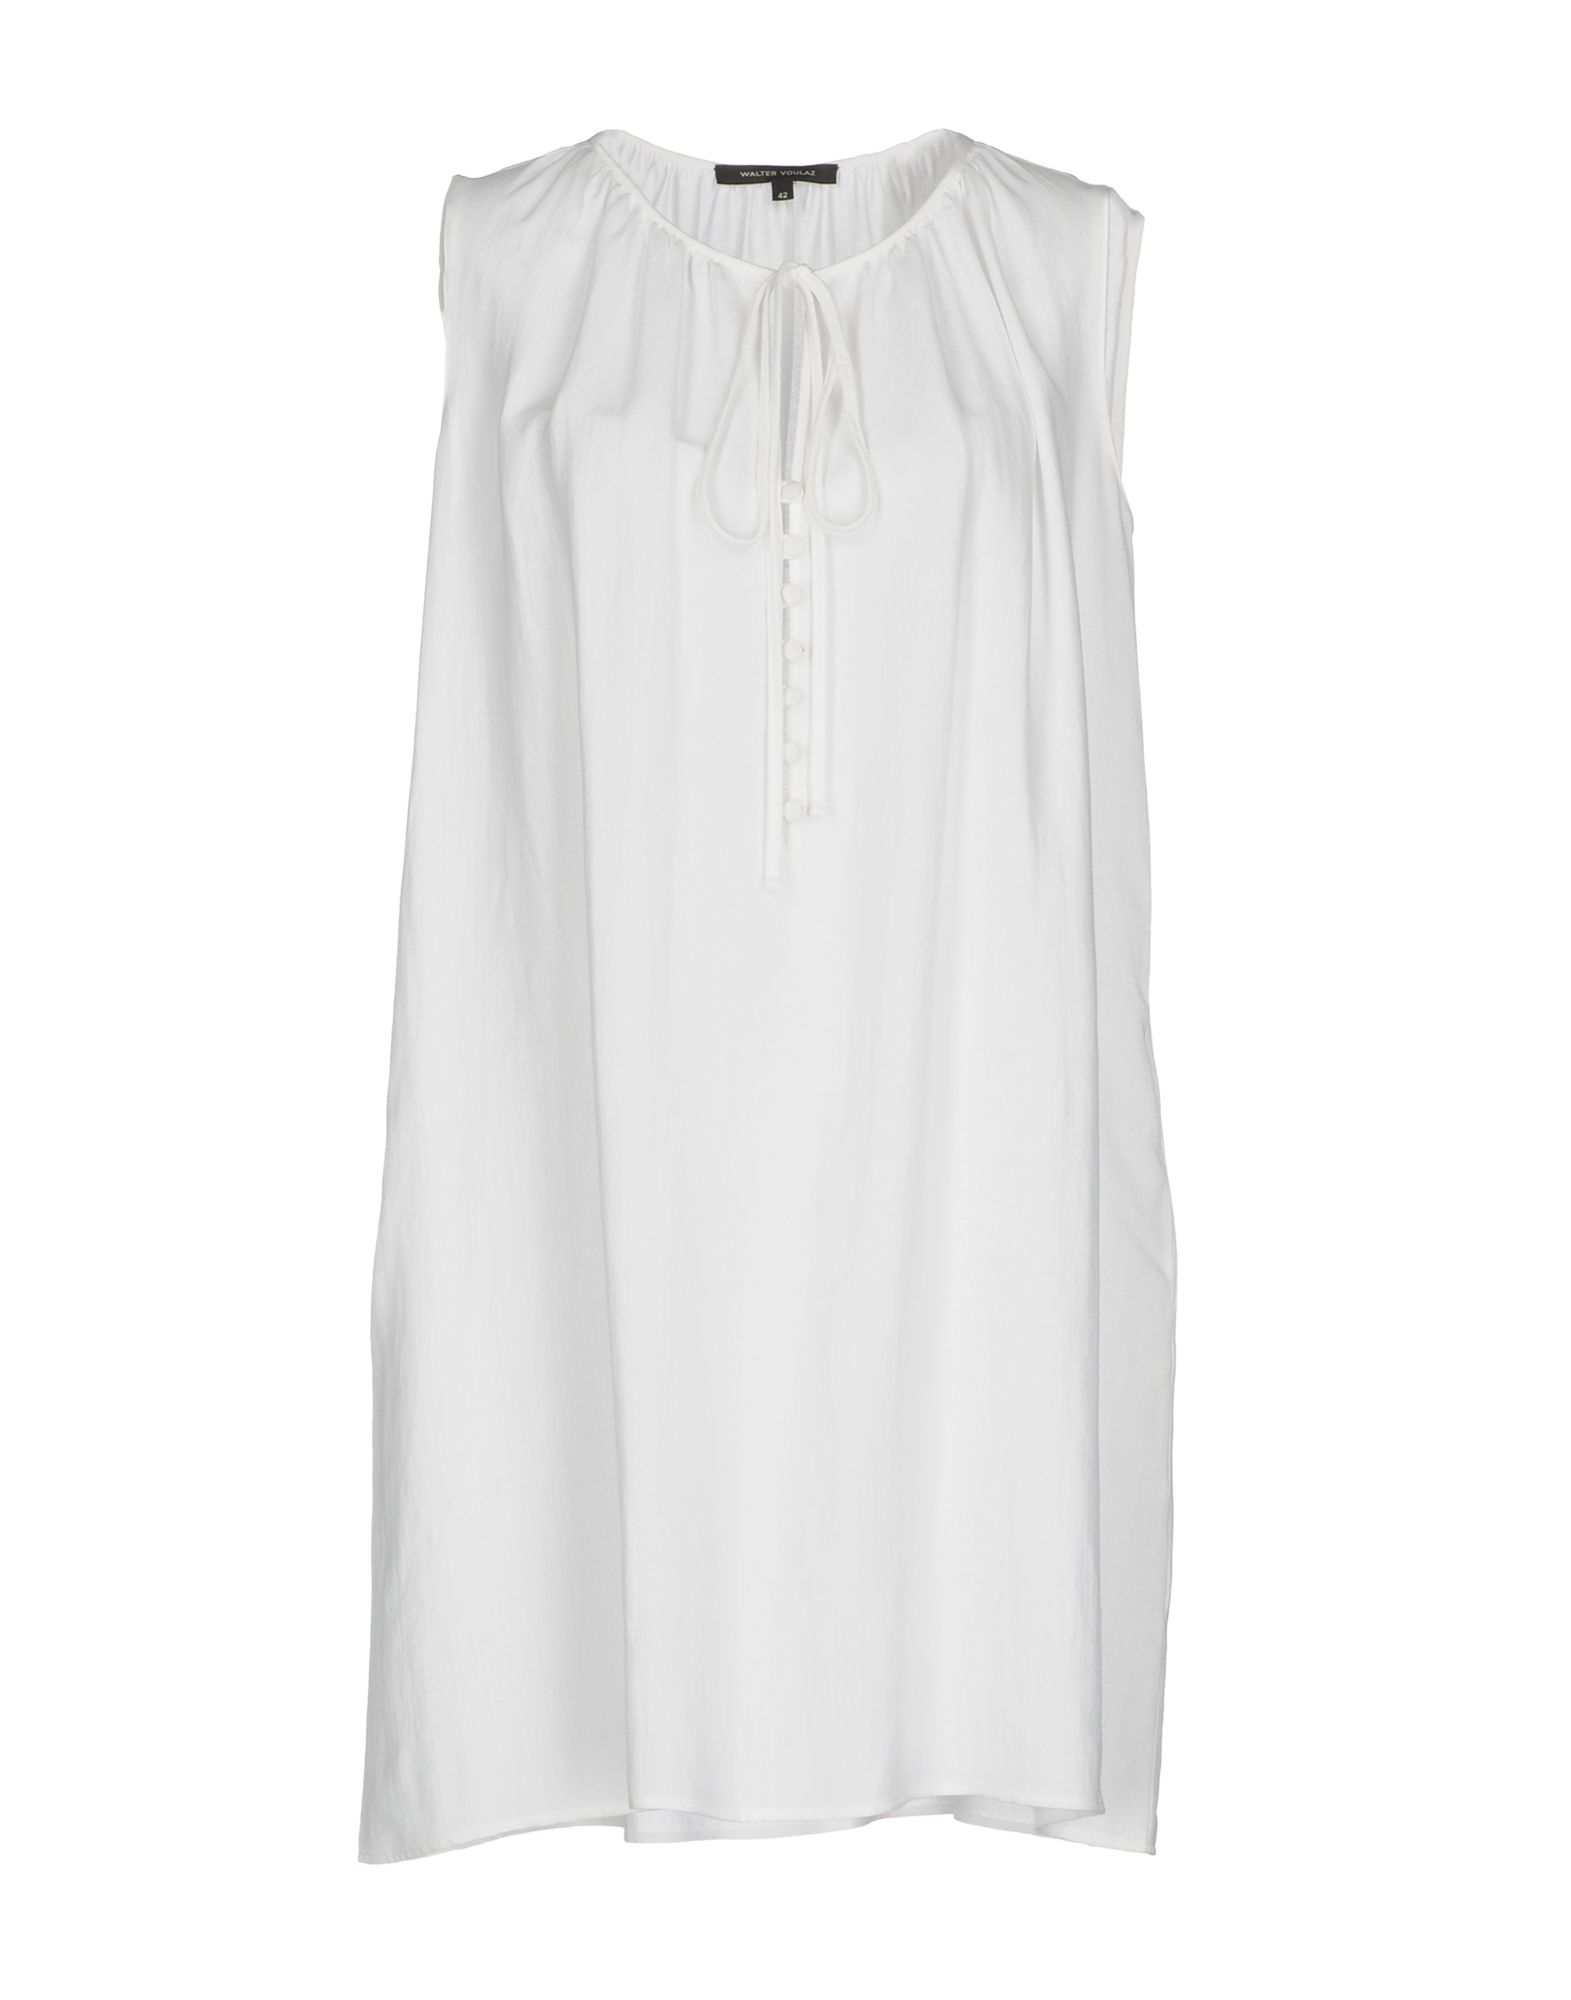 WALTER VOULAZ Short Dress in White